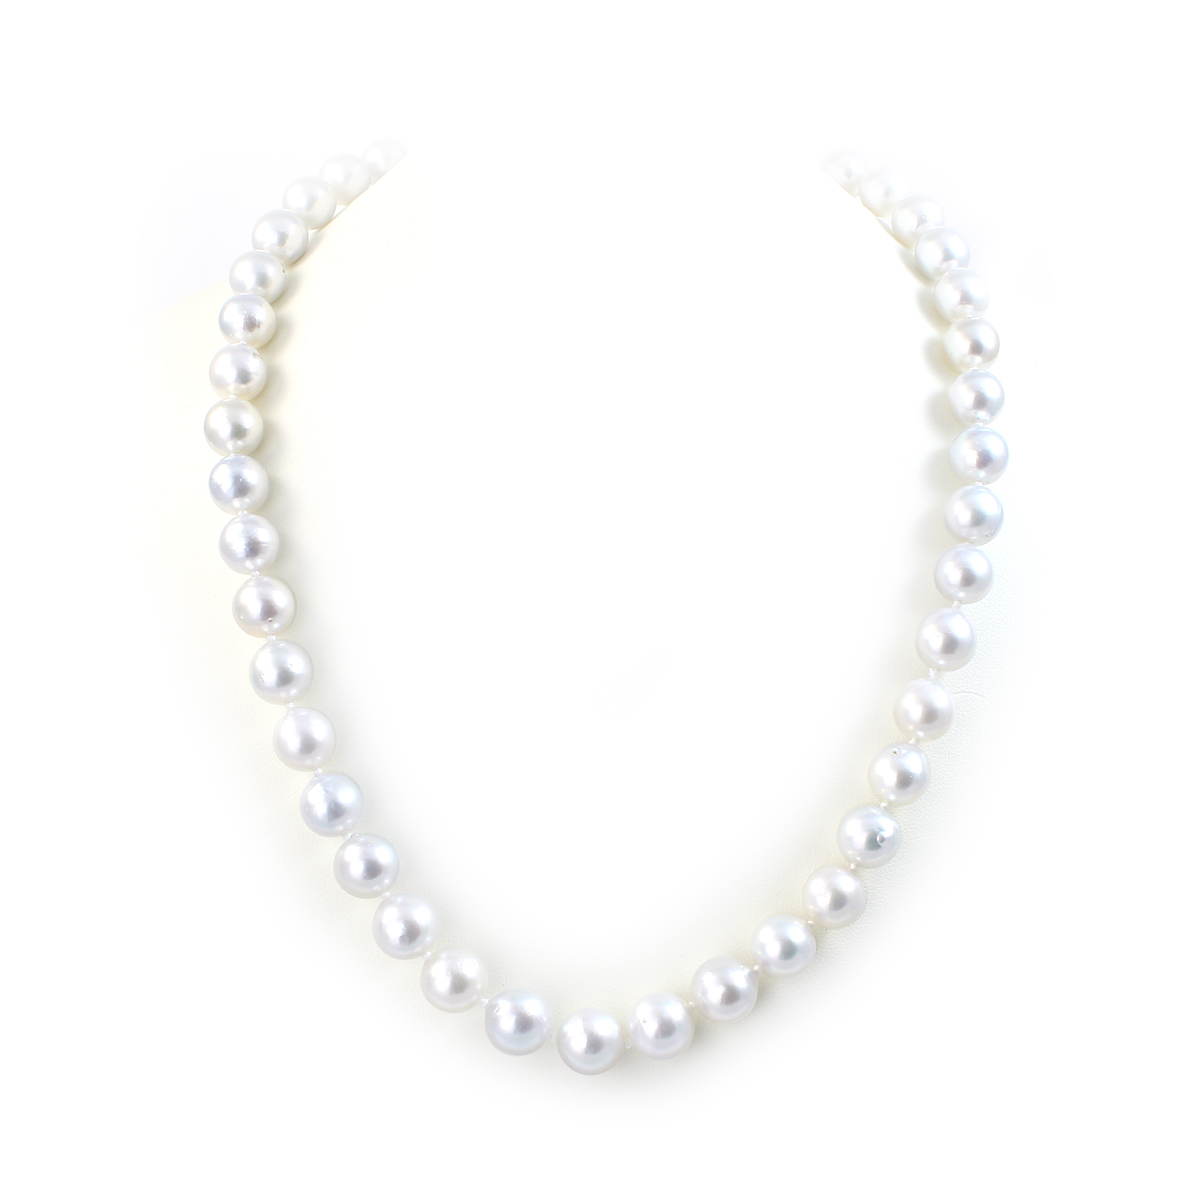 14 Karat White Gold 8.5-10mm White South Sea Pearl Necklace